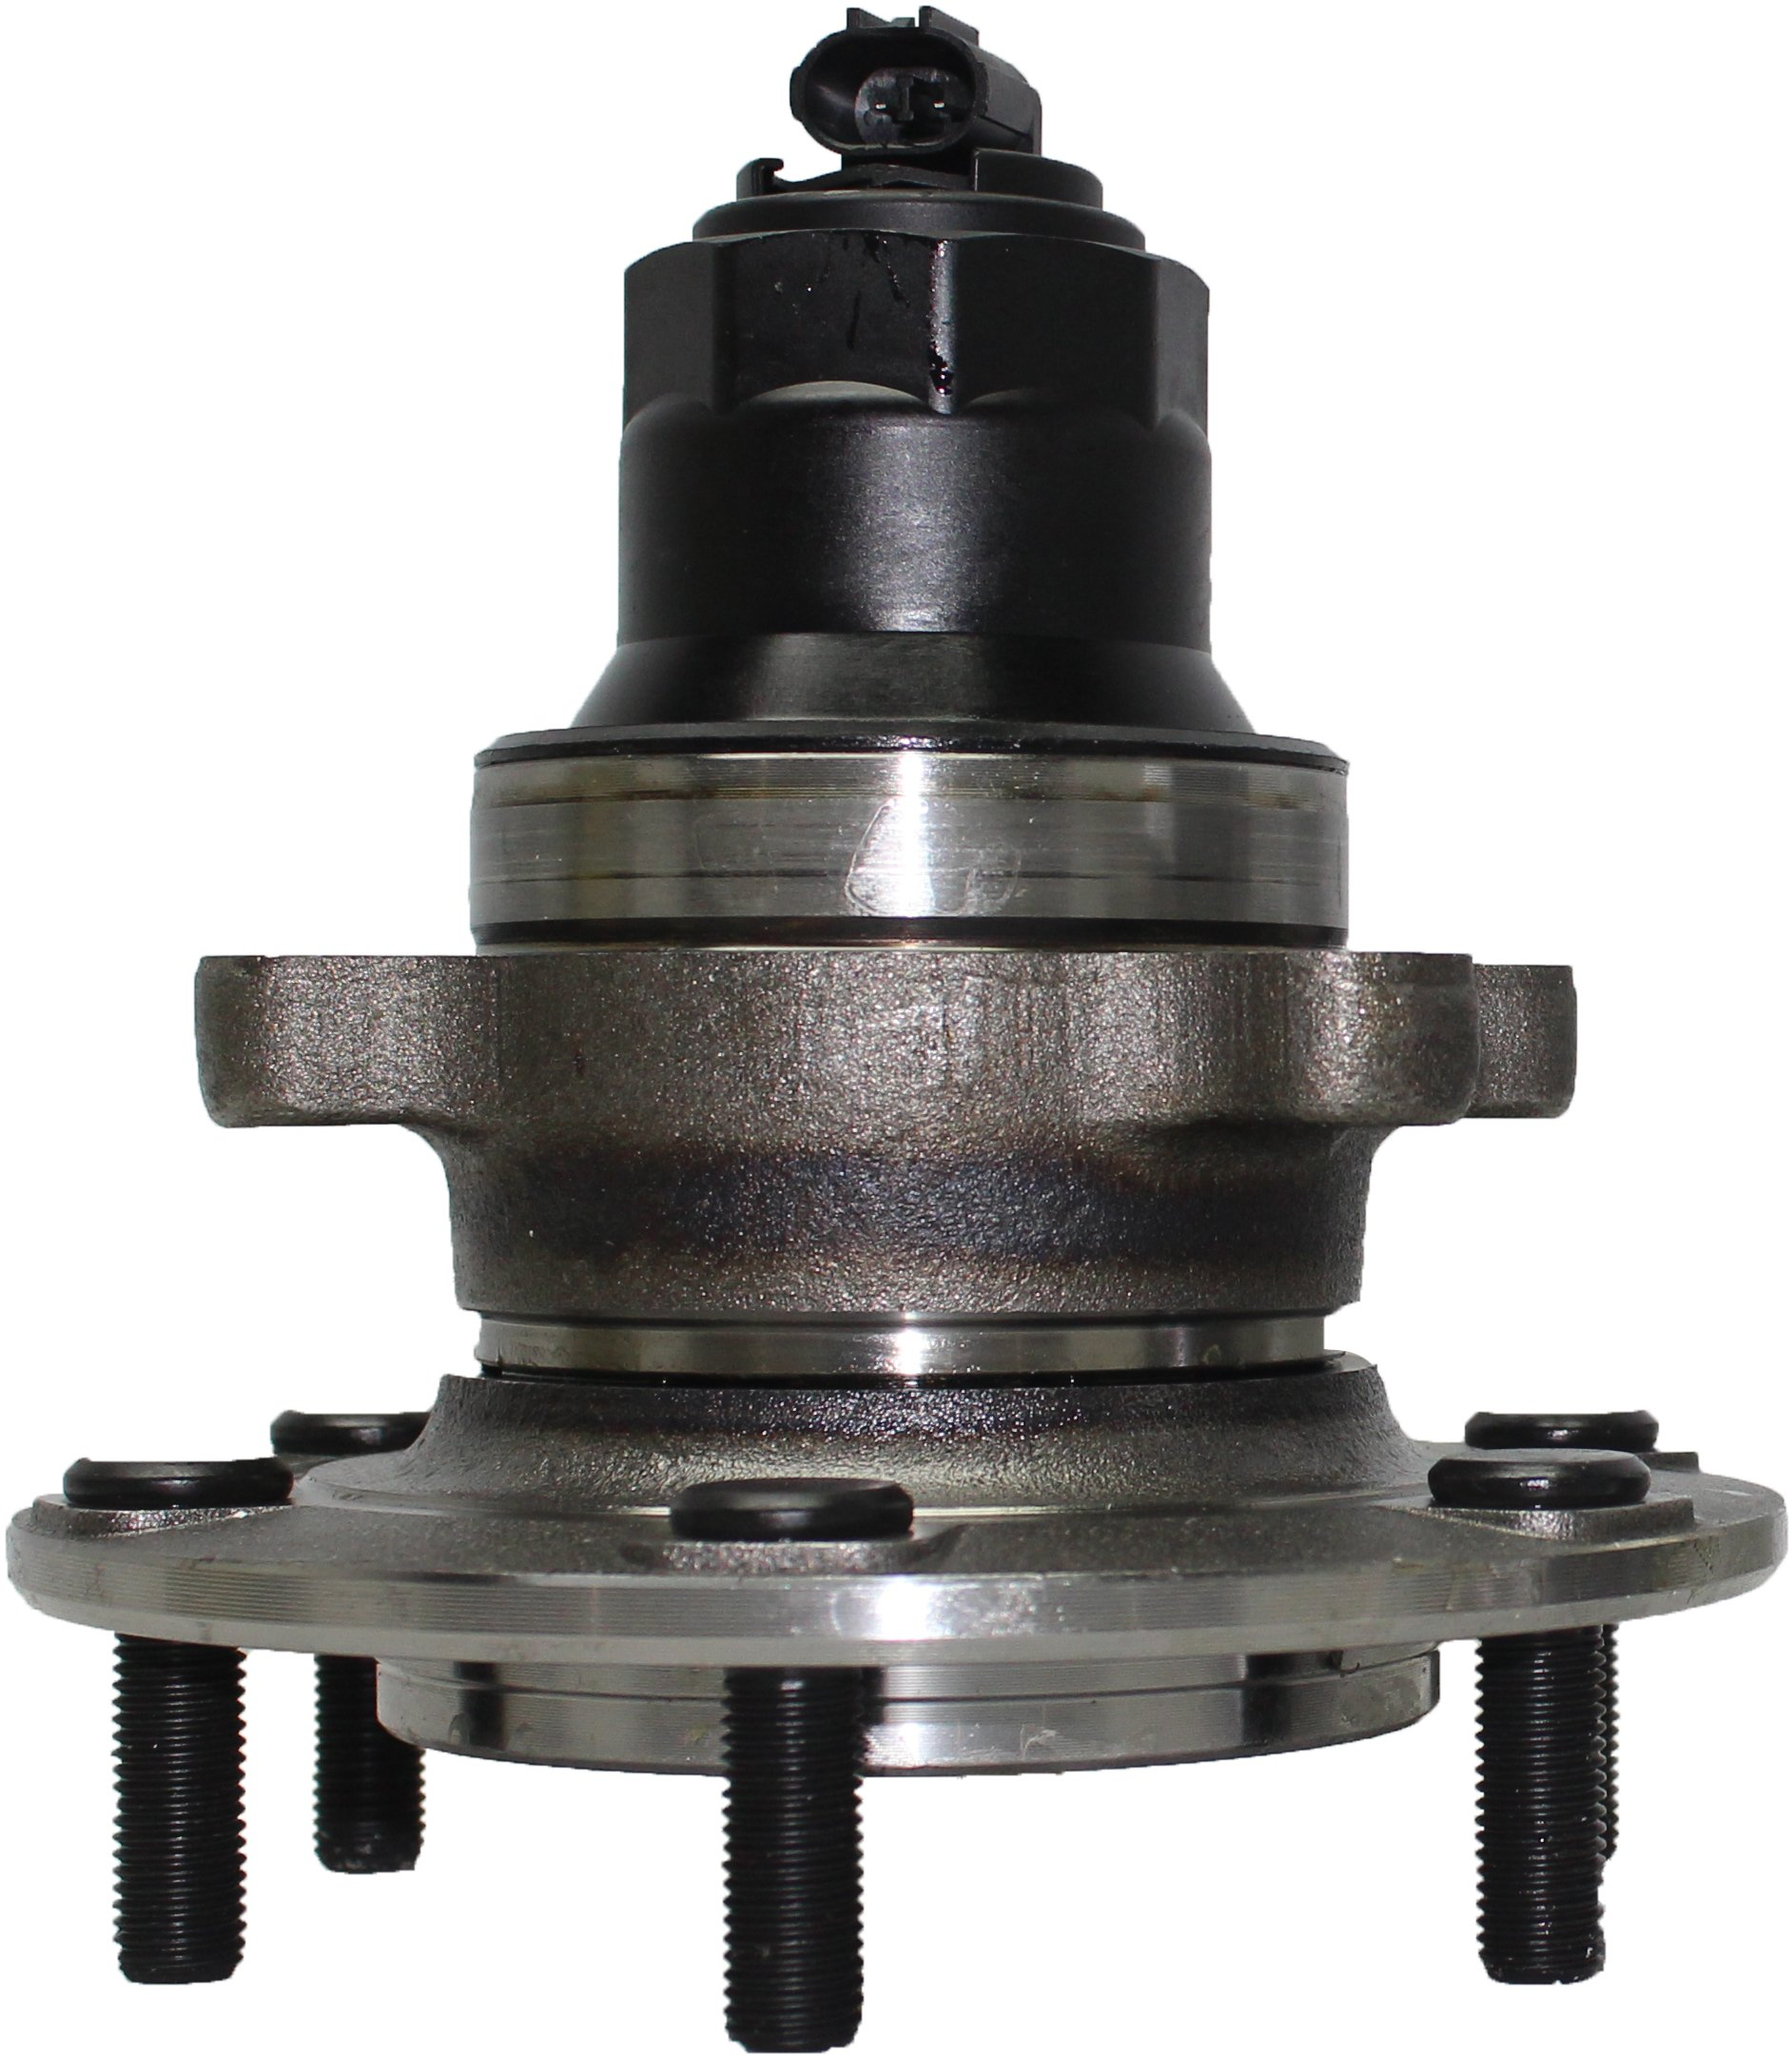 Detroit Axle - Front Wheel Bearing & Hub Assembly Driver or Passenger Side fits 2002-2004 Isuzu Axiom 2WD - [02-04 Rodeo 2wd] - 02-03 Rodeo Sport 2wd - [02 Honda Passport 2WD]